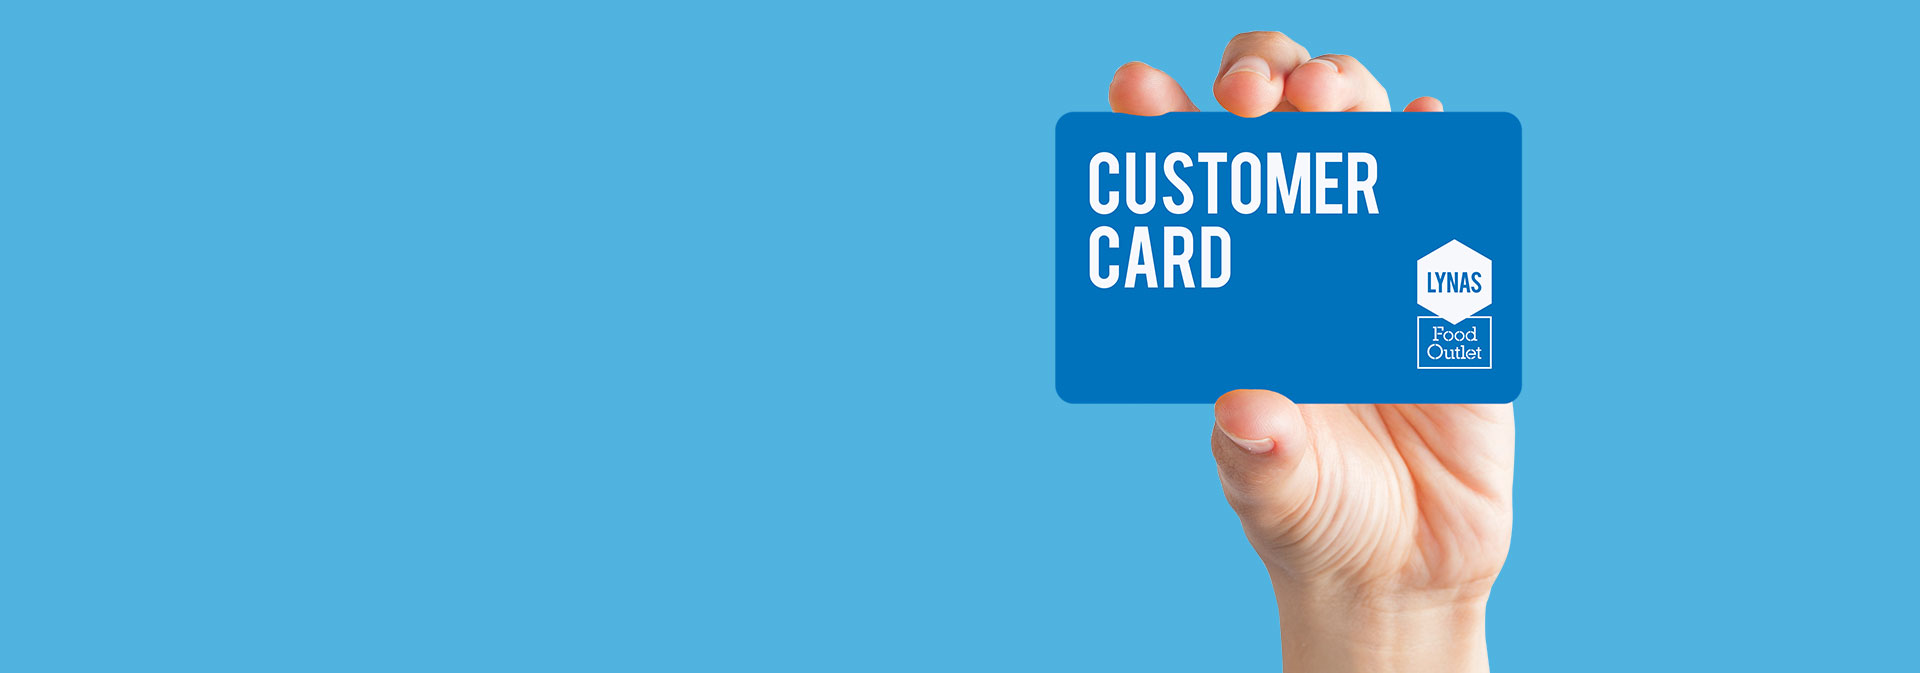 Customer Card - top up with account prices